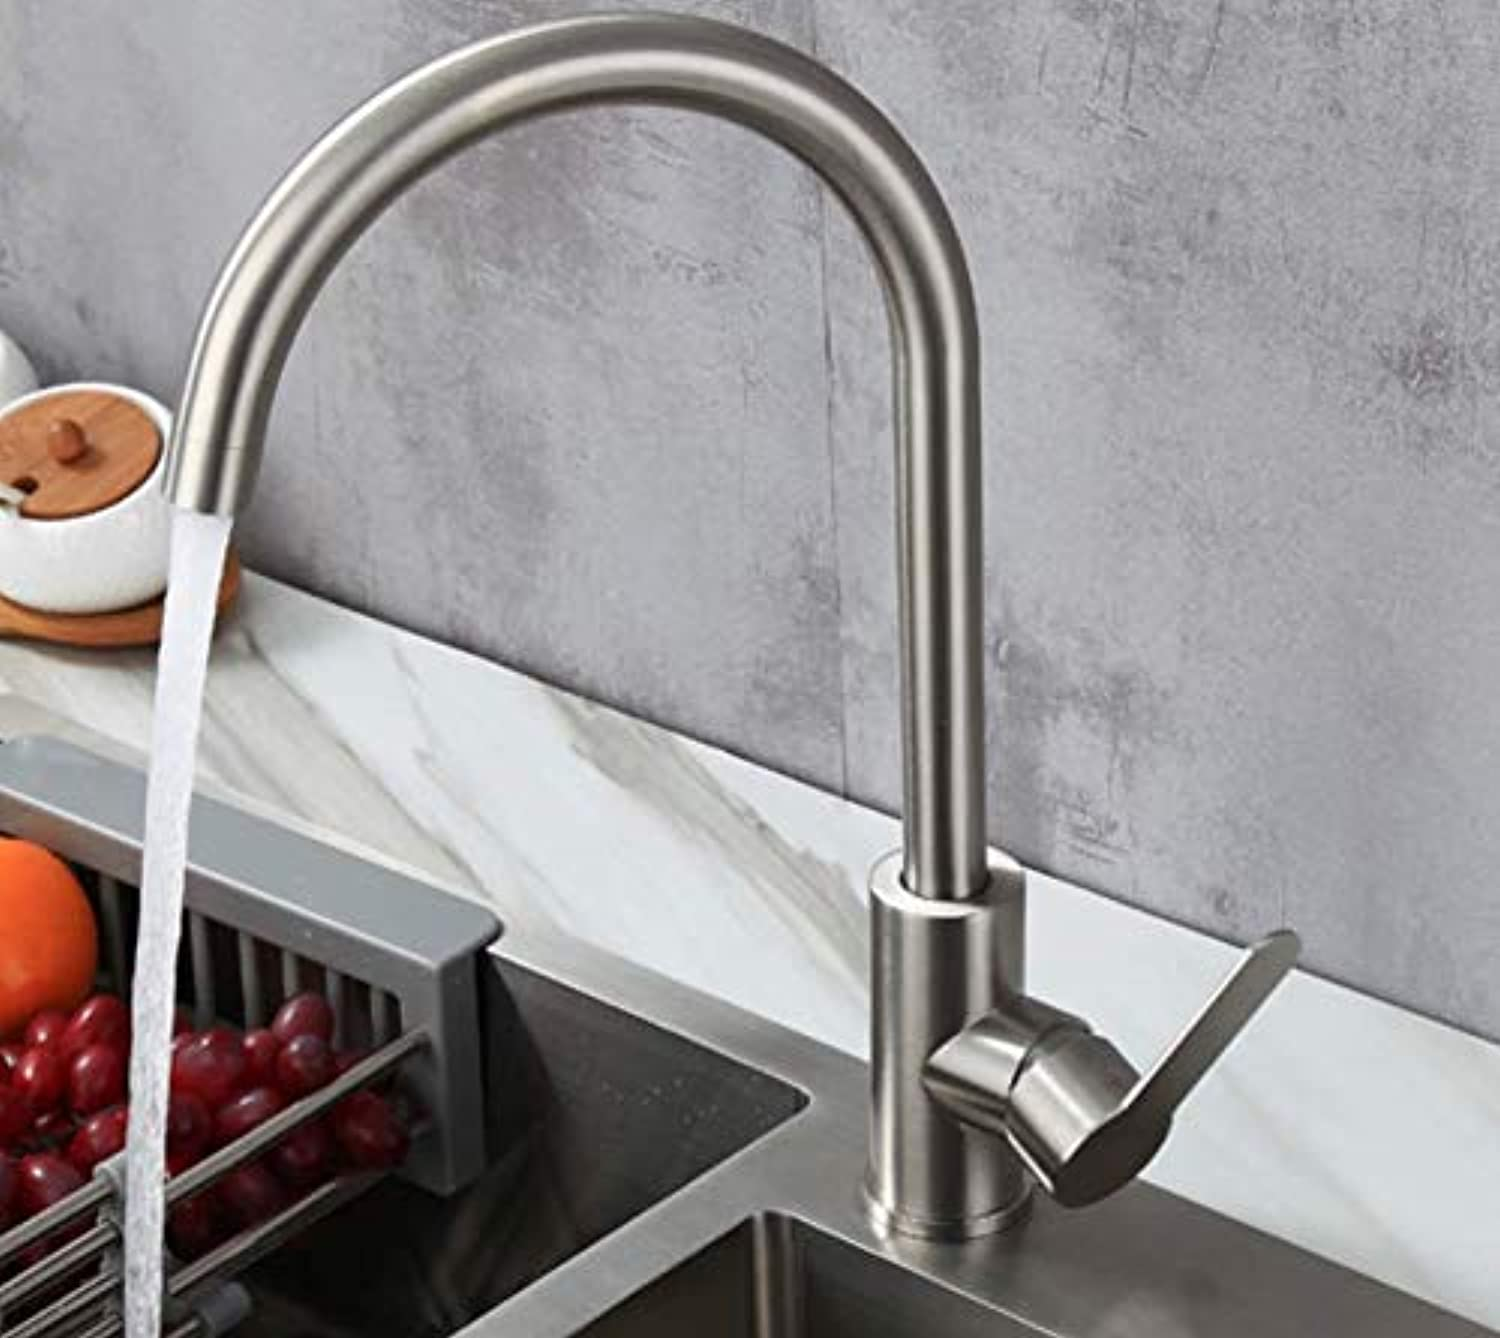 Bathroom Faucet Hot and Cold Brushed Sink, redating Sink, Universal Sus304 Stainless Steel Kitchen Faucet, Single Cold